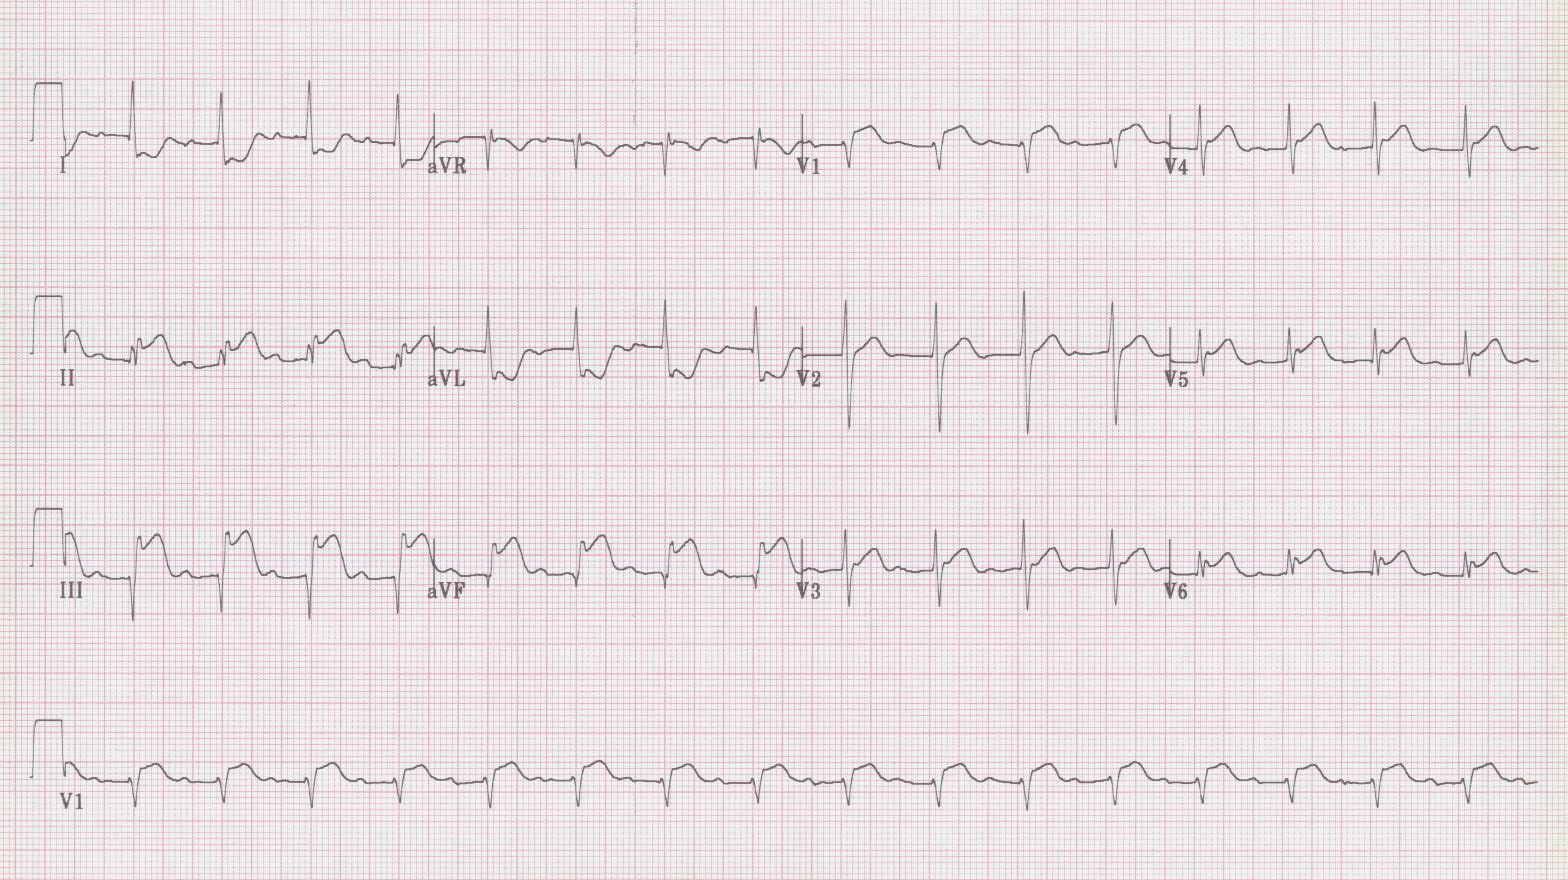 26 - Inferior STEMI with RV infarct